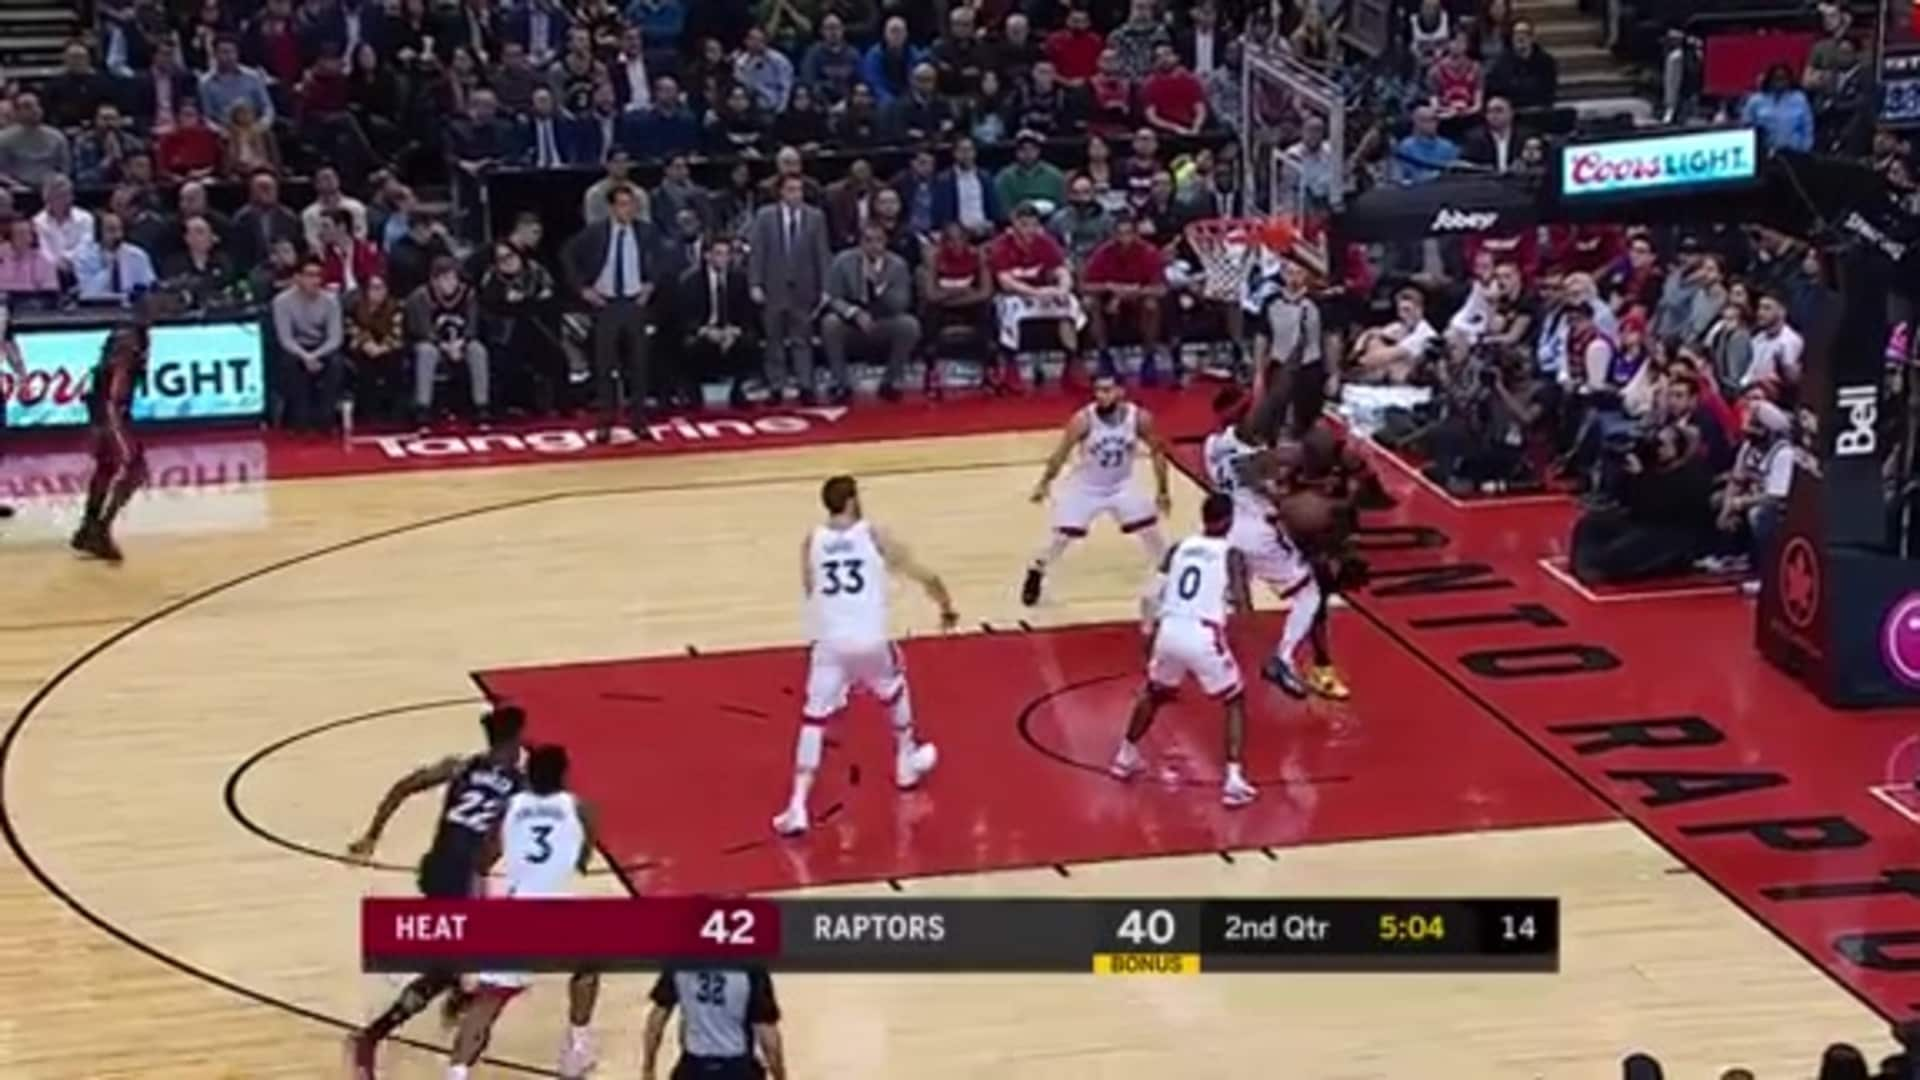 Bam Muscles Past Siakam for the Put-back Reverse Layup